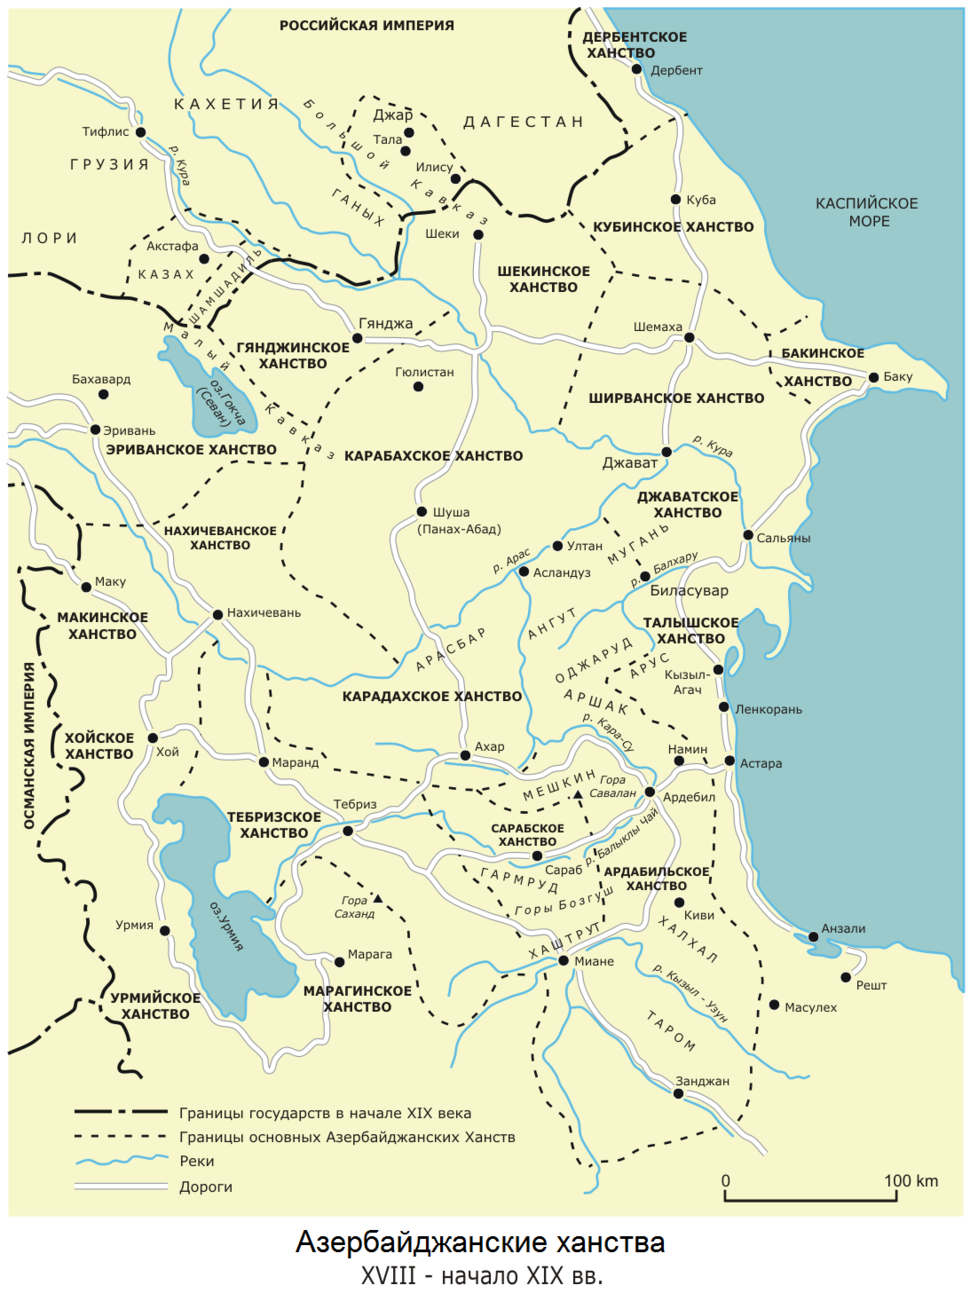 Azerbaijani khanates in the 18th-19th centuries